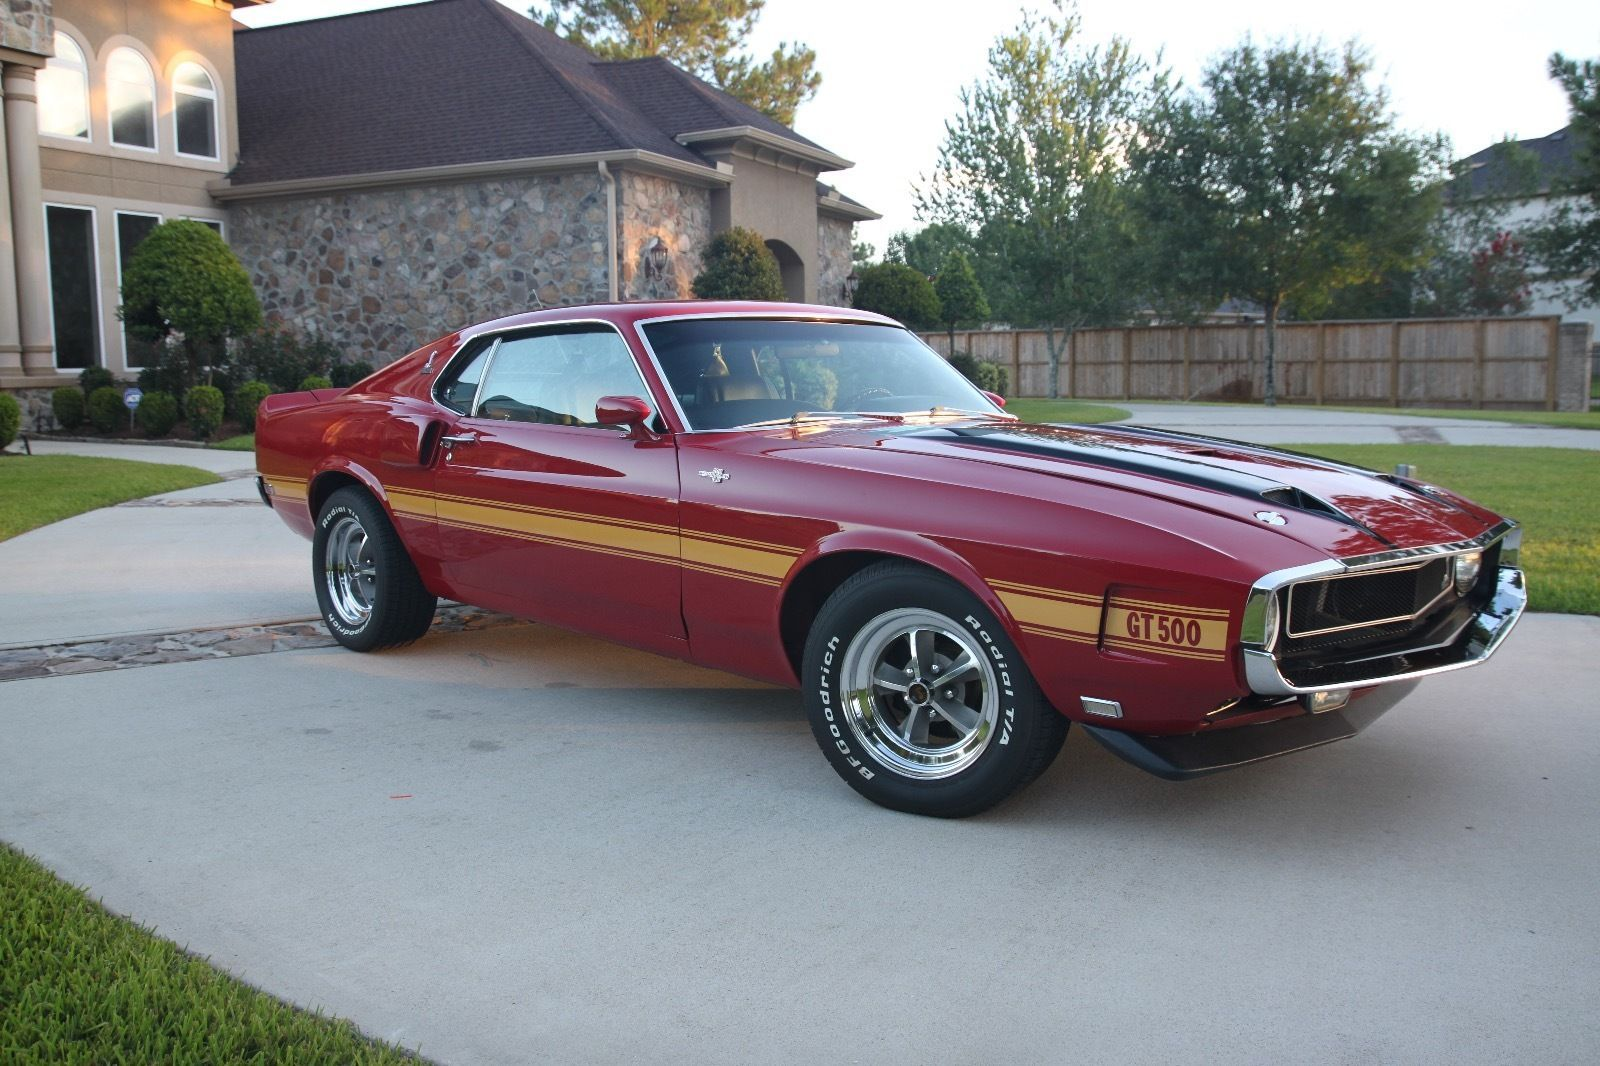 Ford Mustang Shelby Gt500 Ebay Places To Visit Pinterest